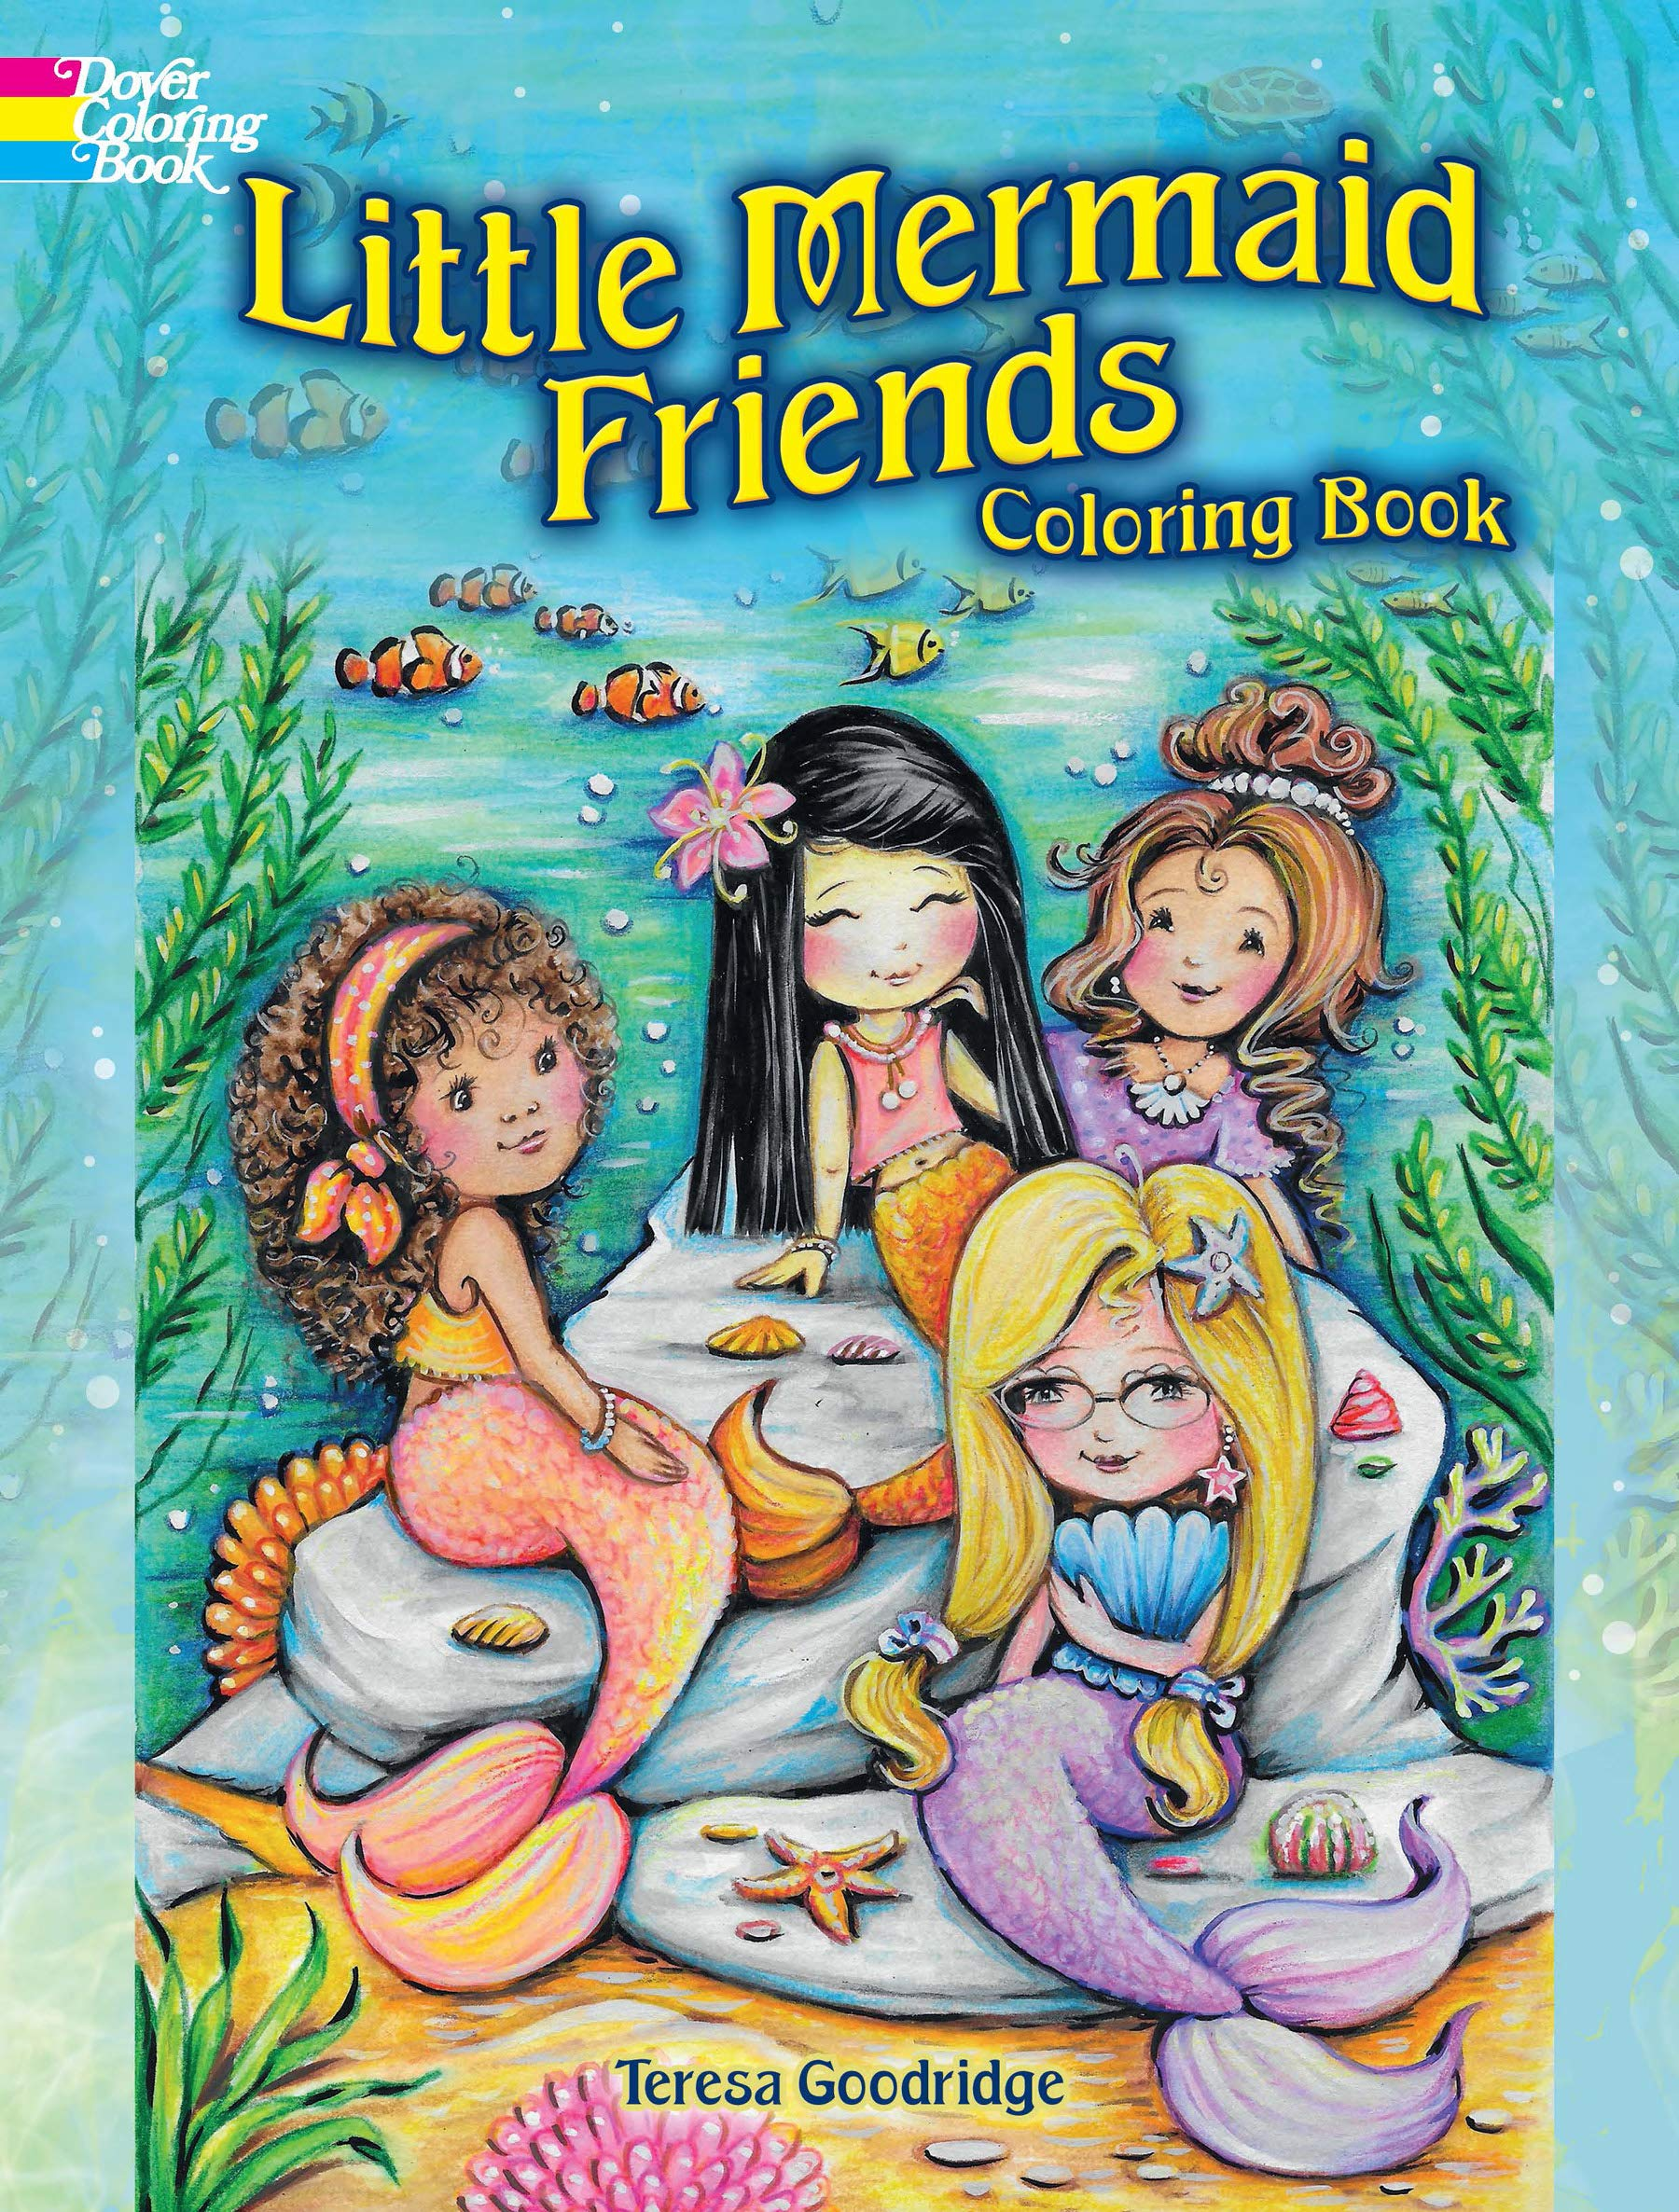 - Little Mermaid Friends Coloring Book (Dover Coloring Books